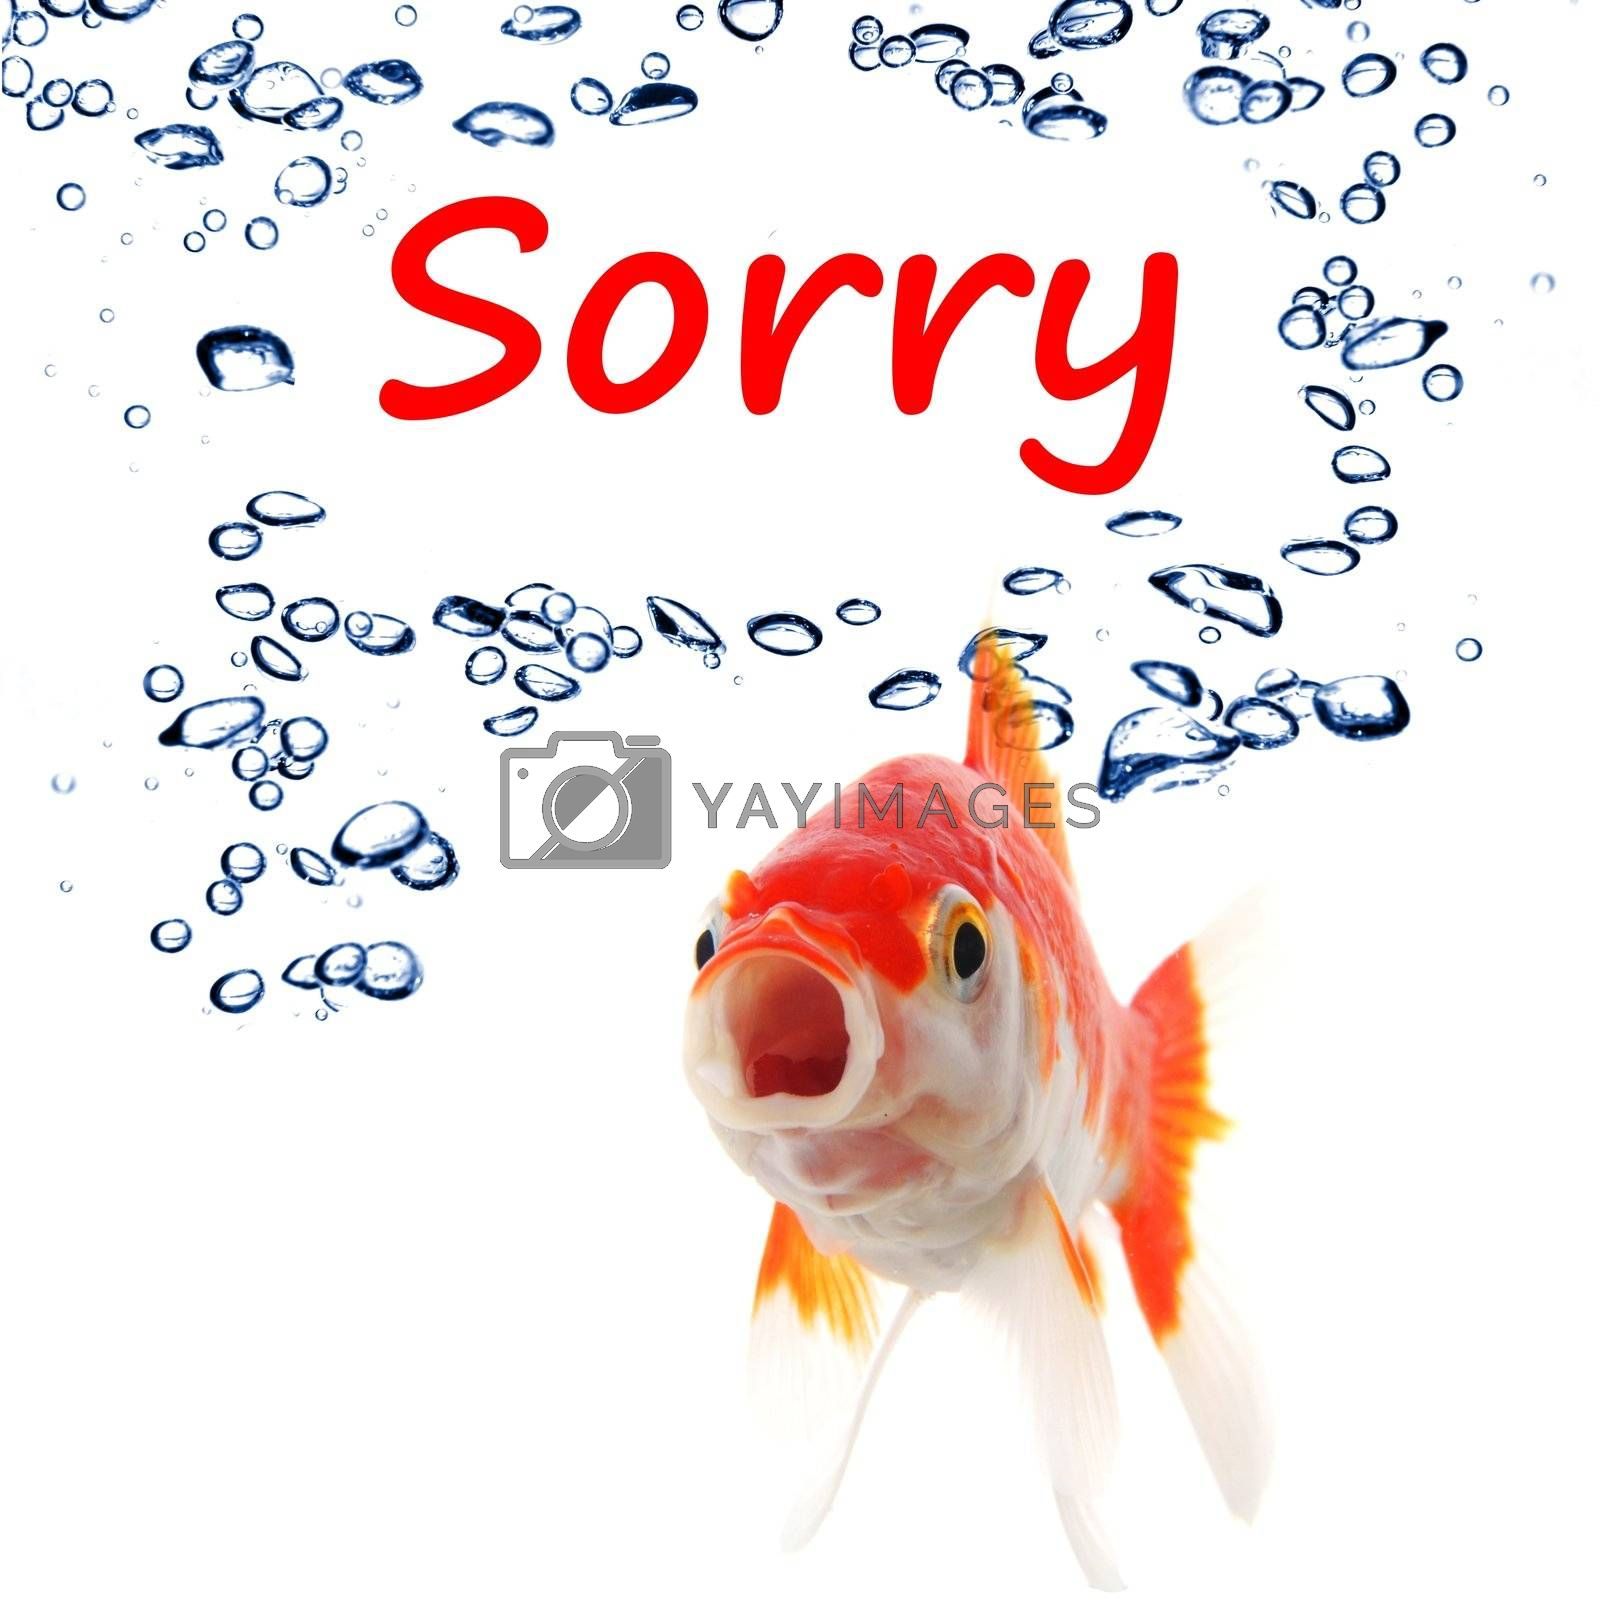 sorry concept with word and goldfish isolated on white background